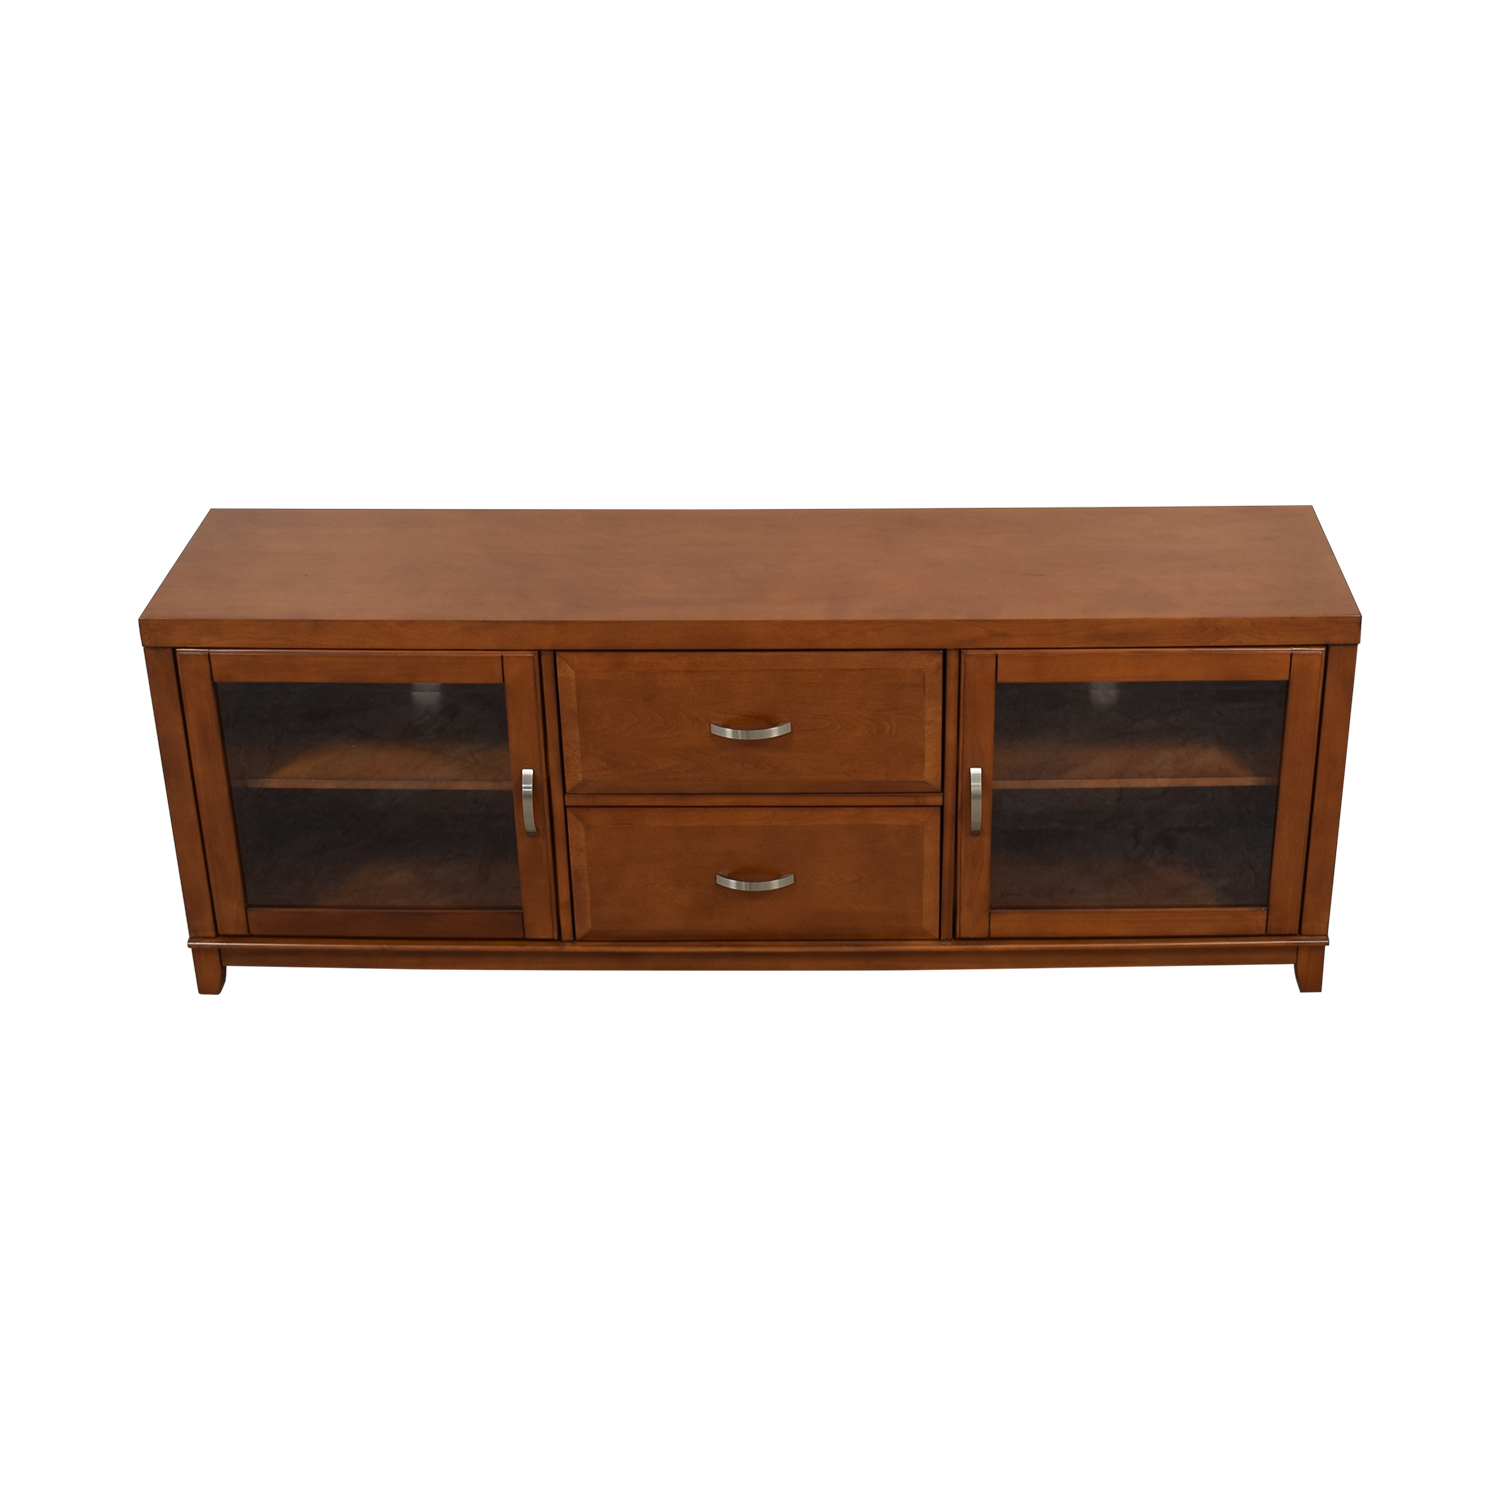 shop Raymour & Flanigan Wood and Glass Media Console Raymour & Flanigan